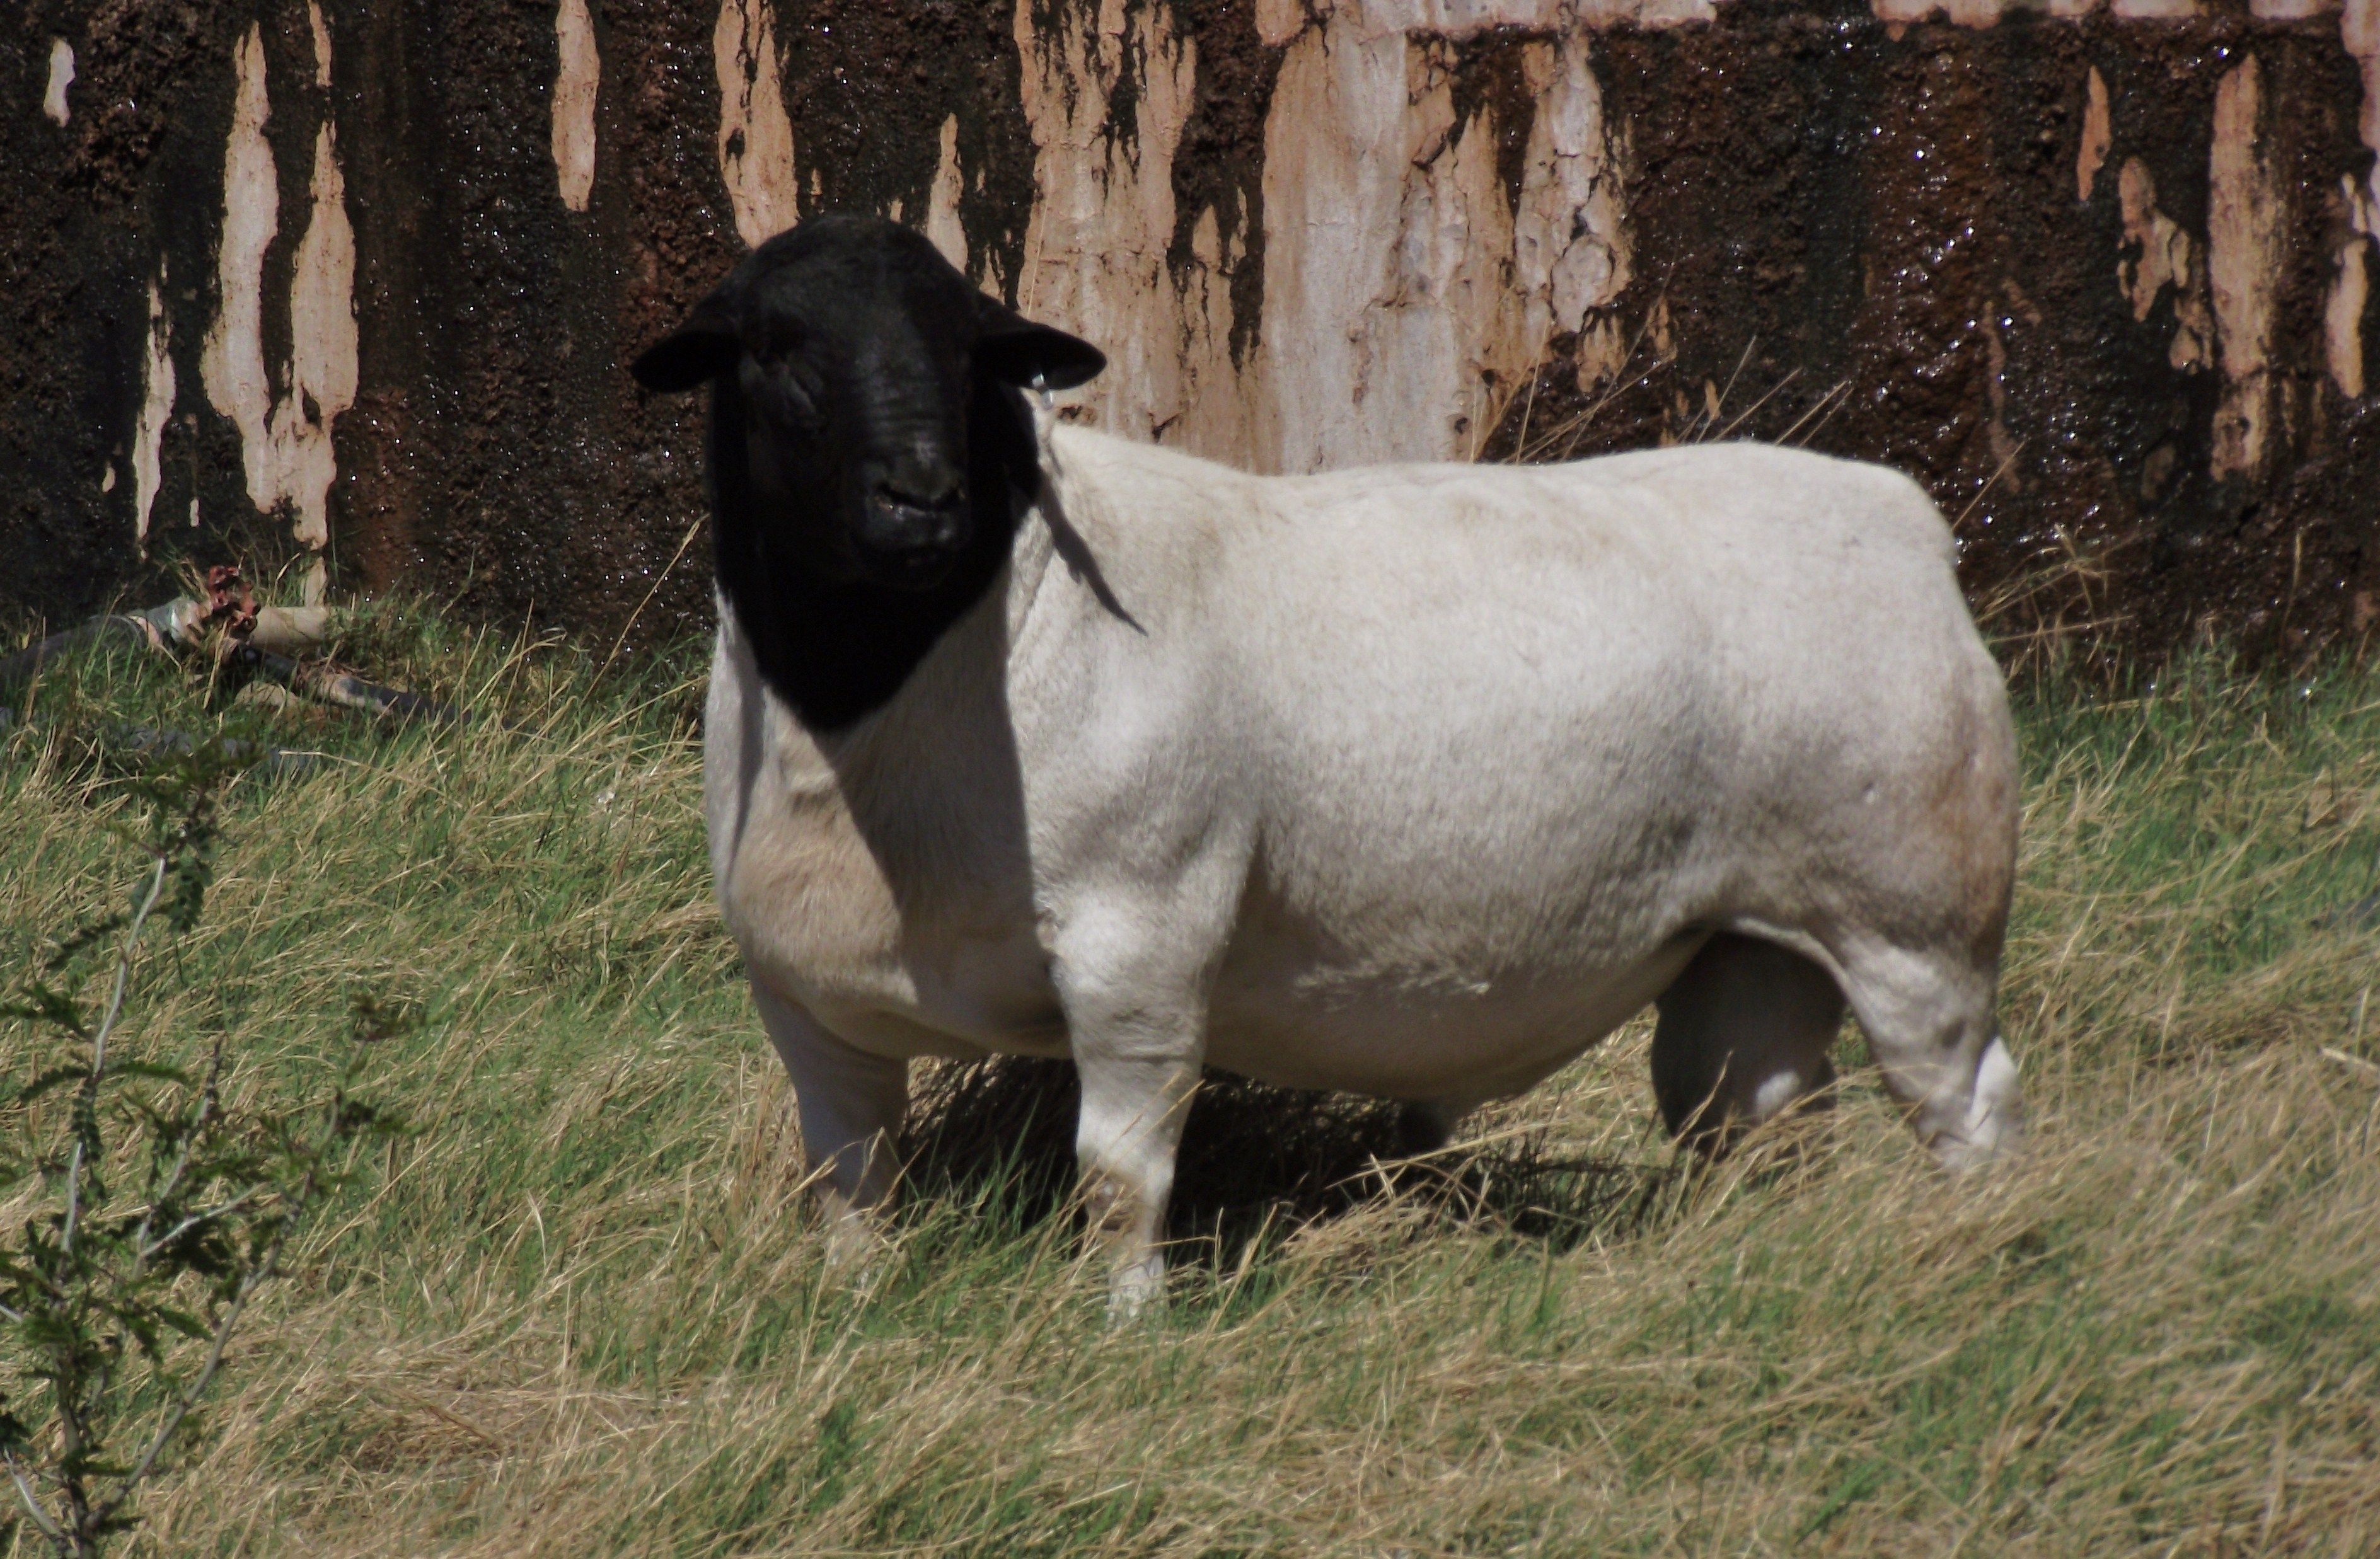 One of our dorper rams